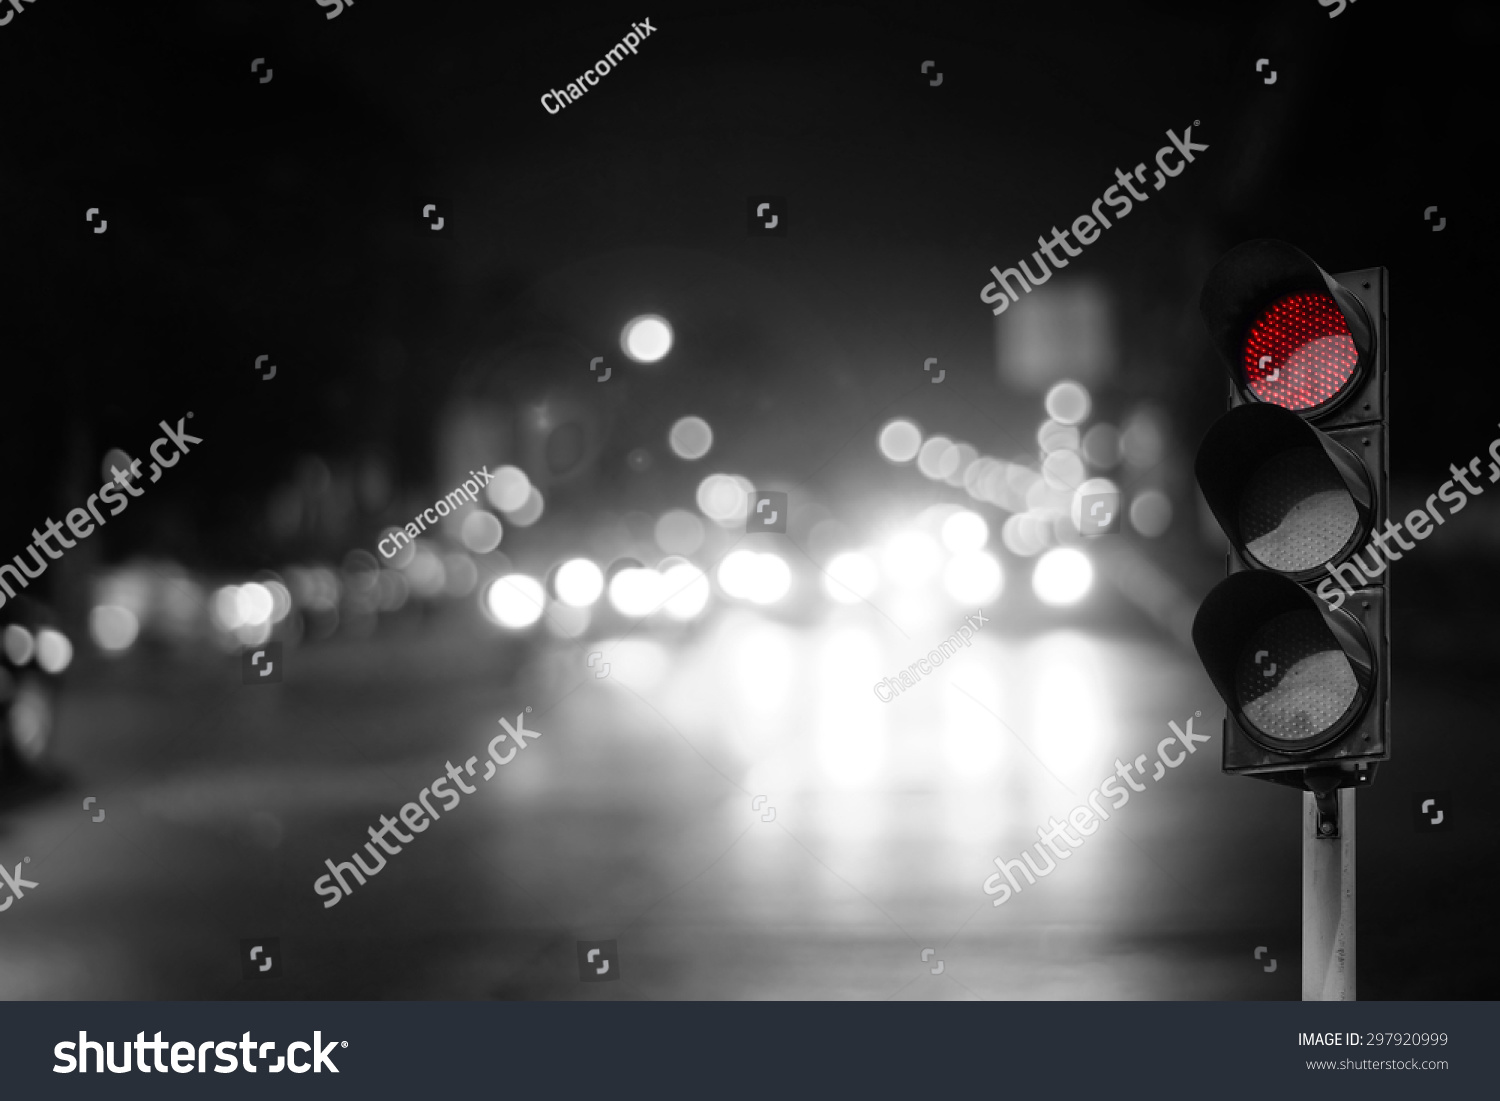 Red Traffic Light On Road Night Stock Photo 297920999 - Shutterstock for Traffic Light On Road At Night  303mzq